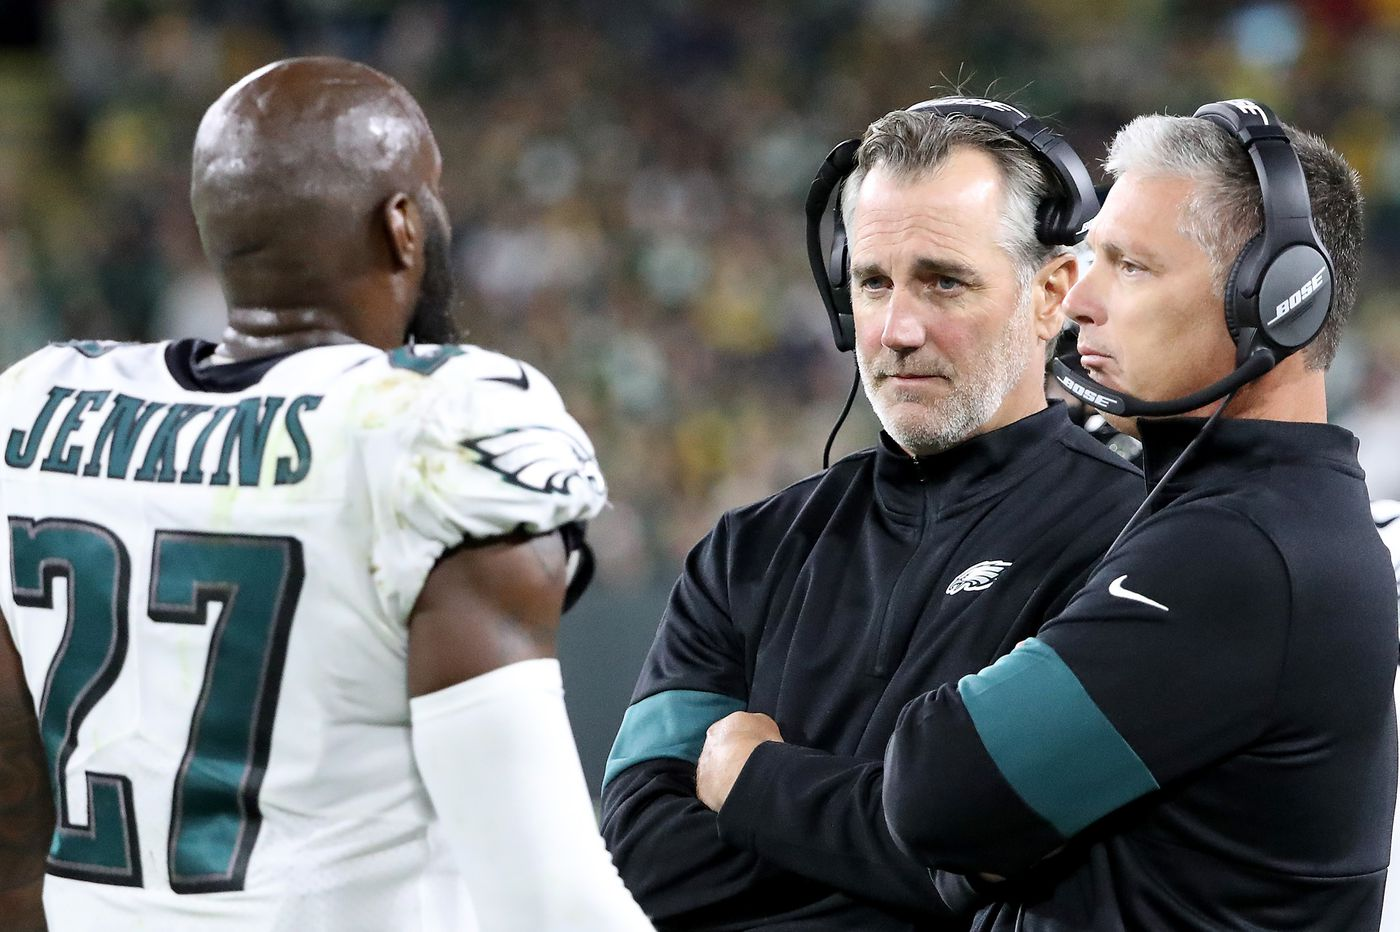 Cory Undlin really got a coordinator's job? Yes, and Malcolm Jenkins endorsed the Eagles' DB coach | Marcus Ha